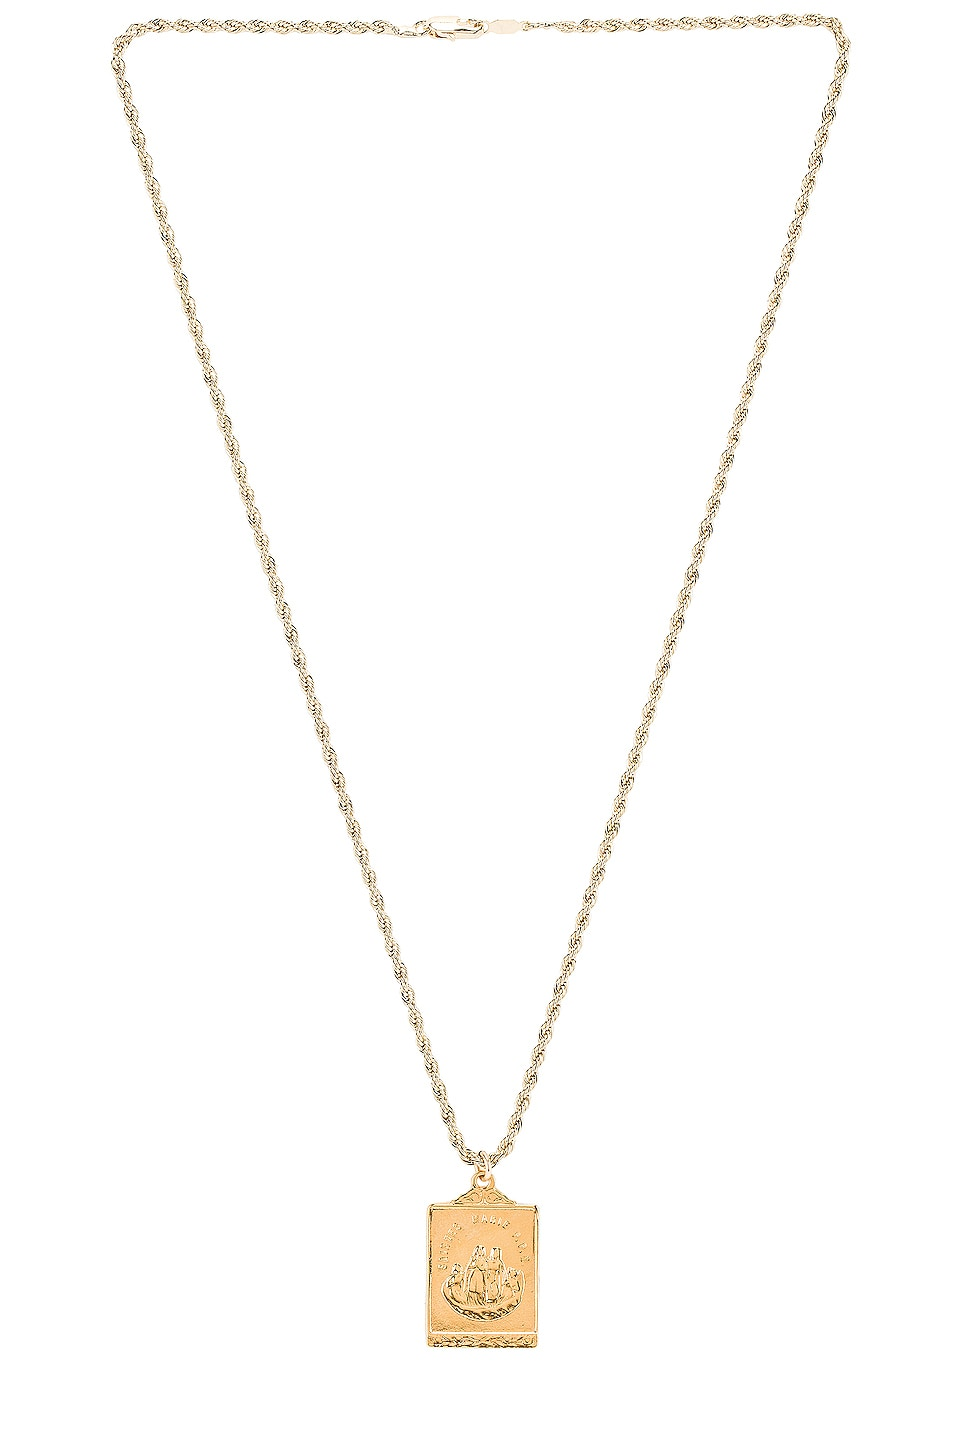 Natalie B Jewelry Saint Marie Necklace in Gold